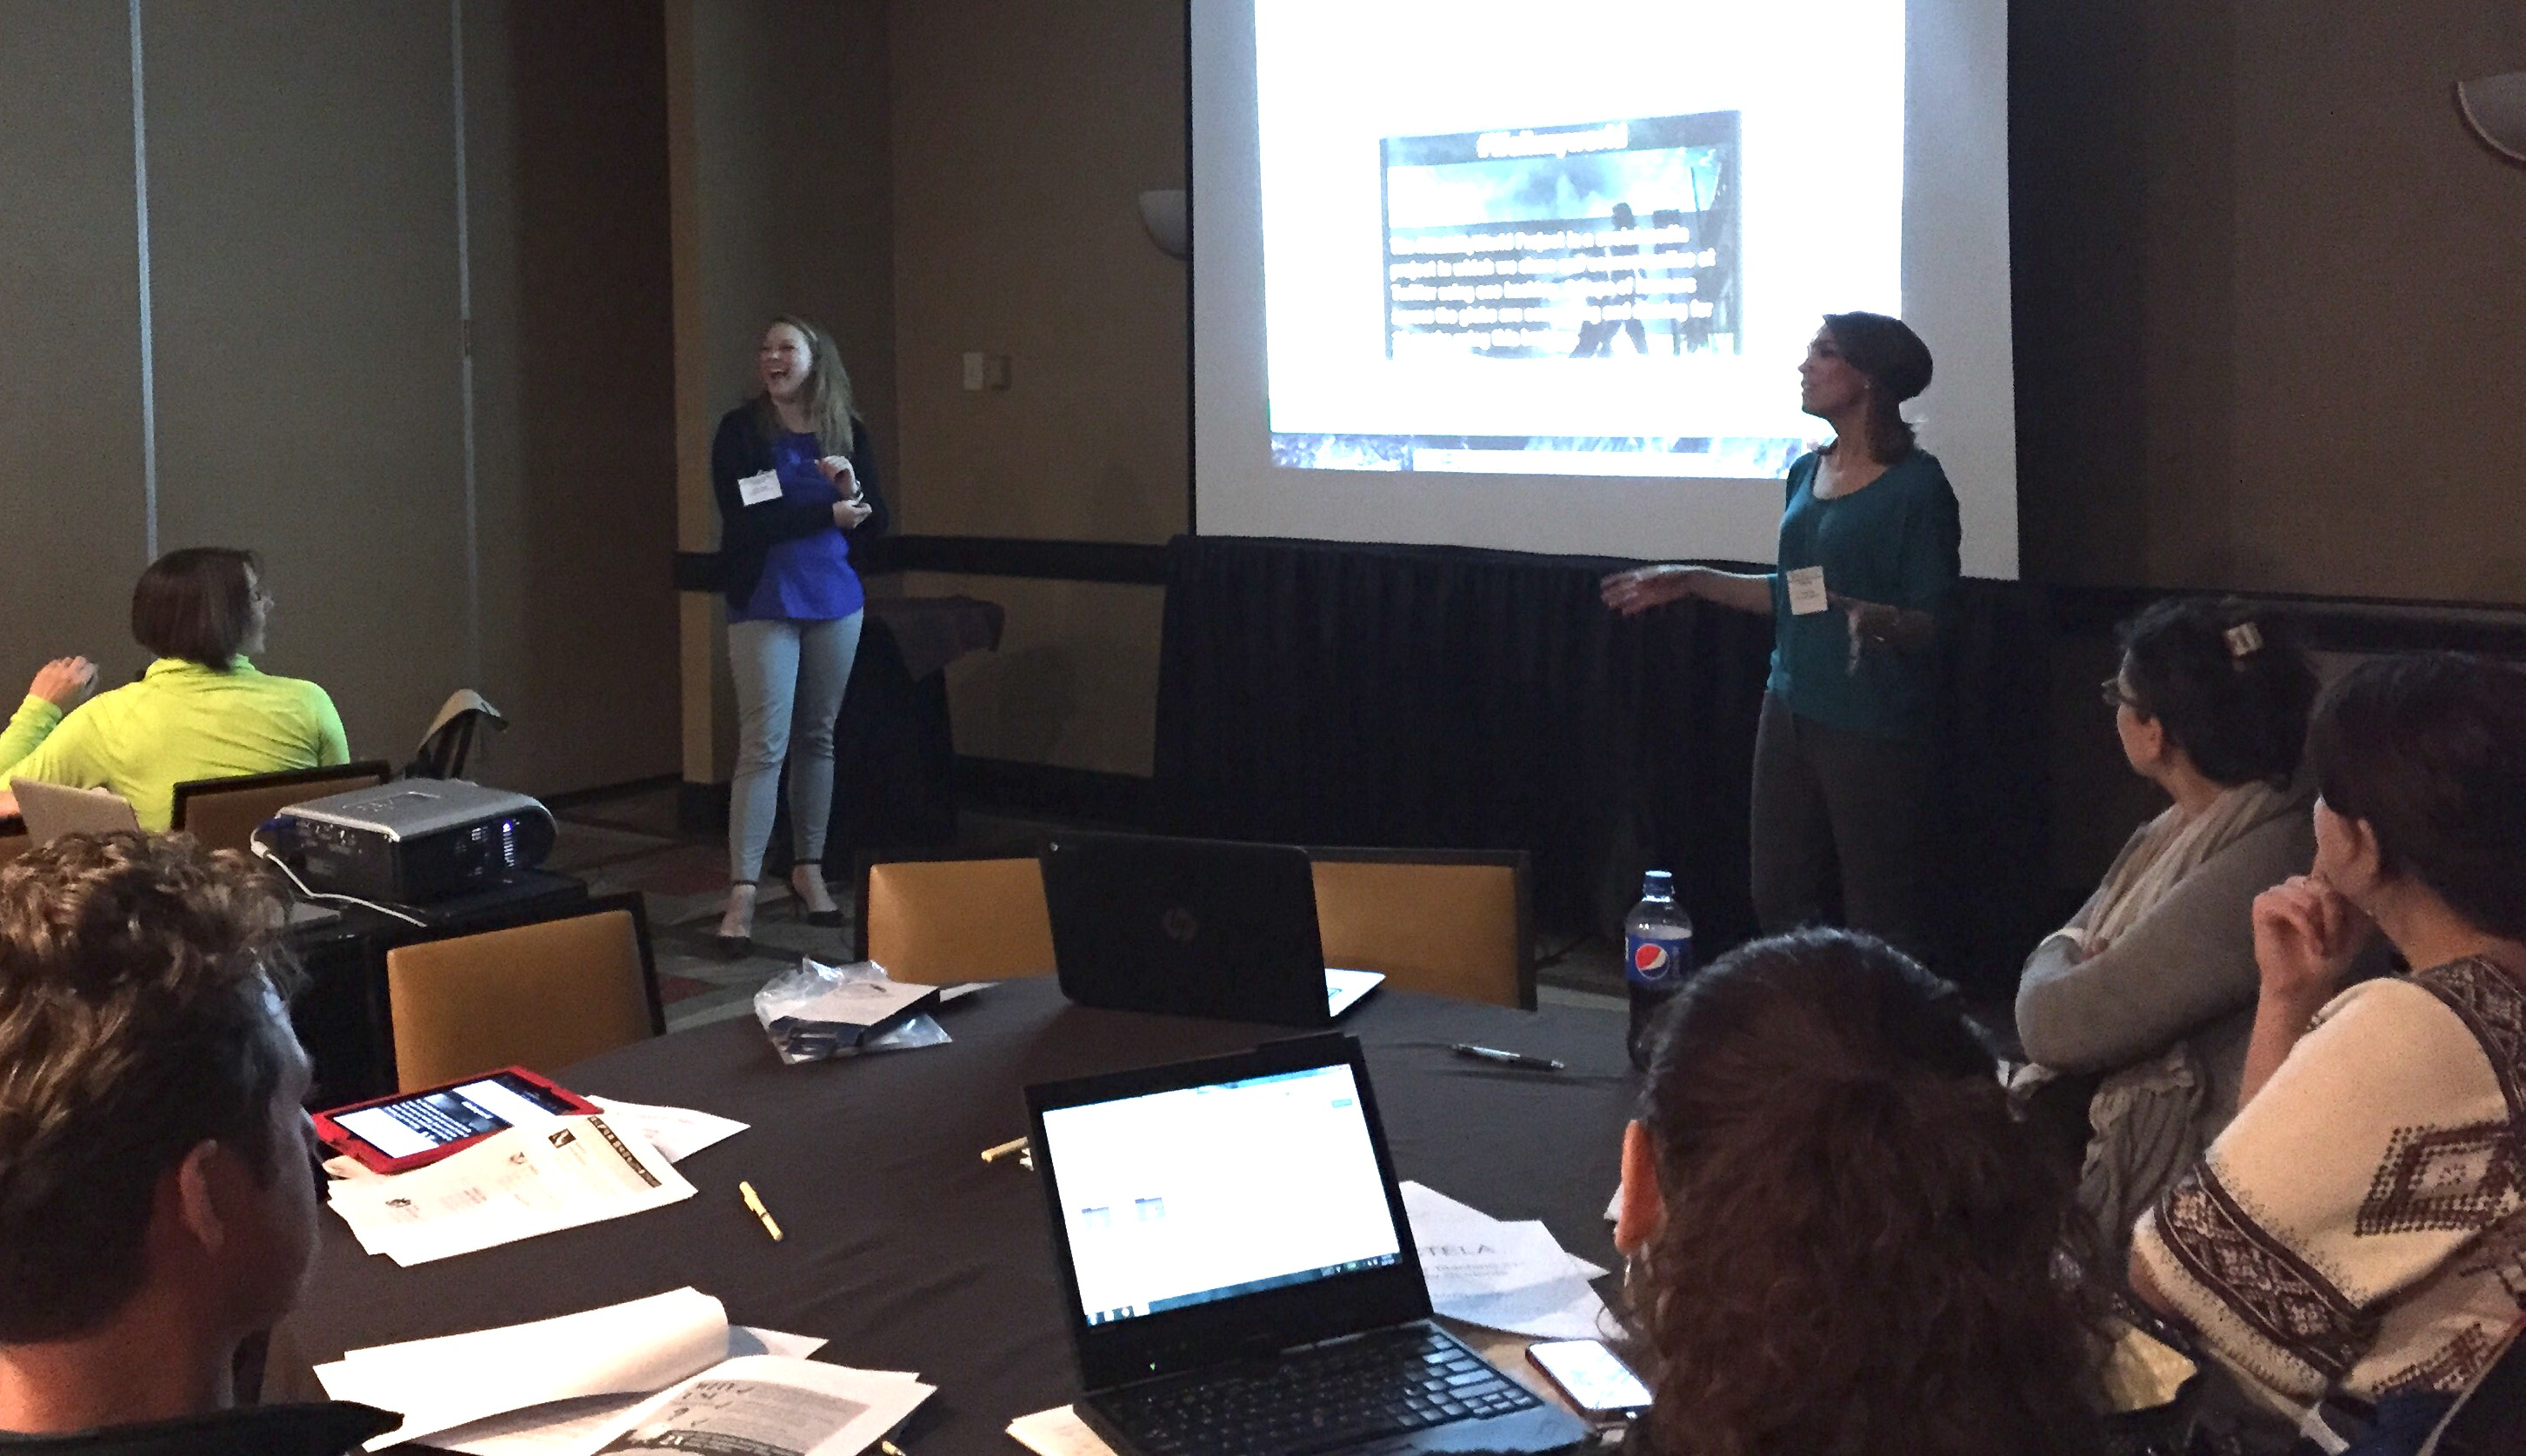 INLA students in a presentation at the OCTELA conference